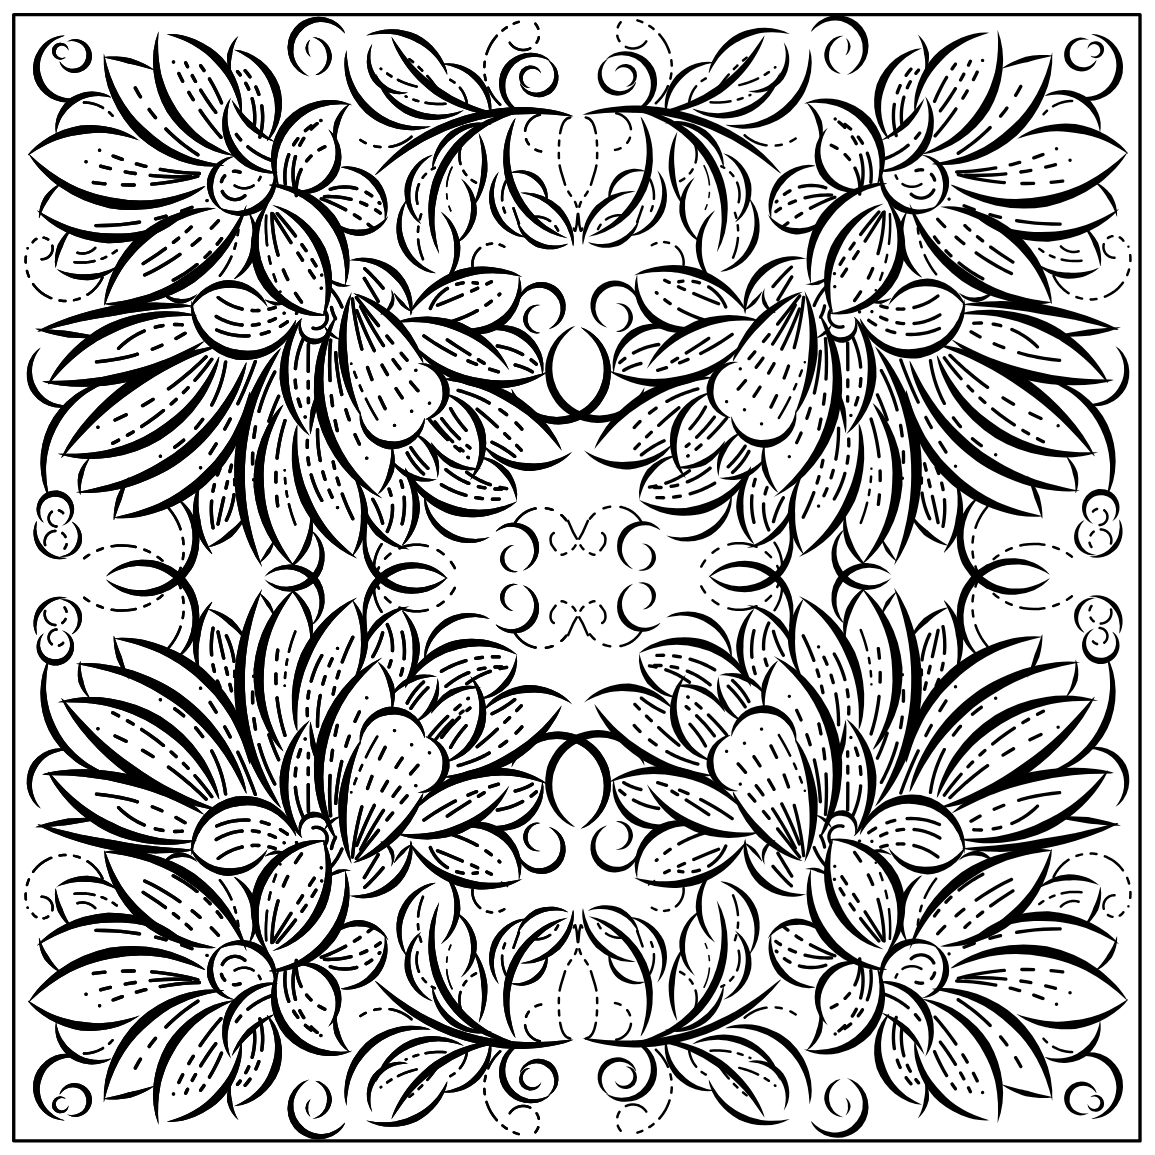 symmetrical coloring pages nicole39s free coloring pages symmetry coloring pages symmetrical pages coloring